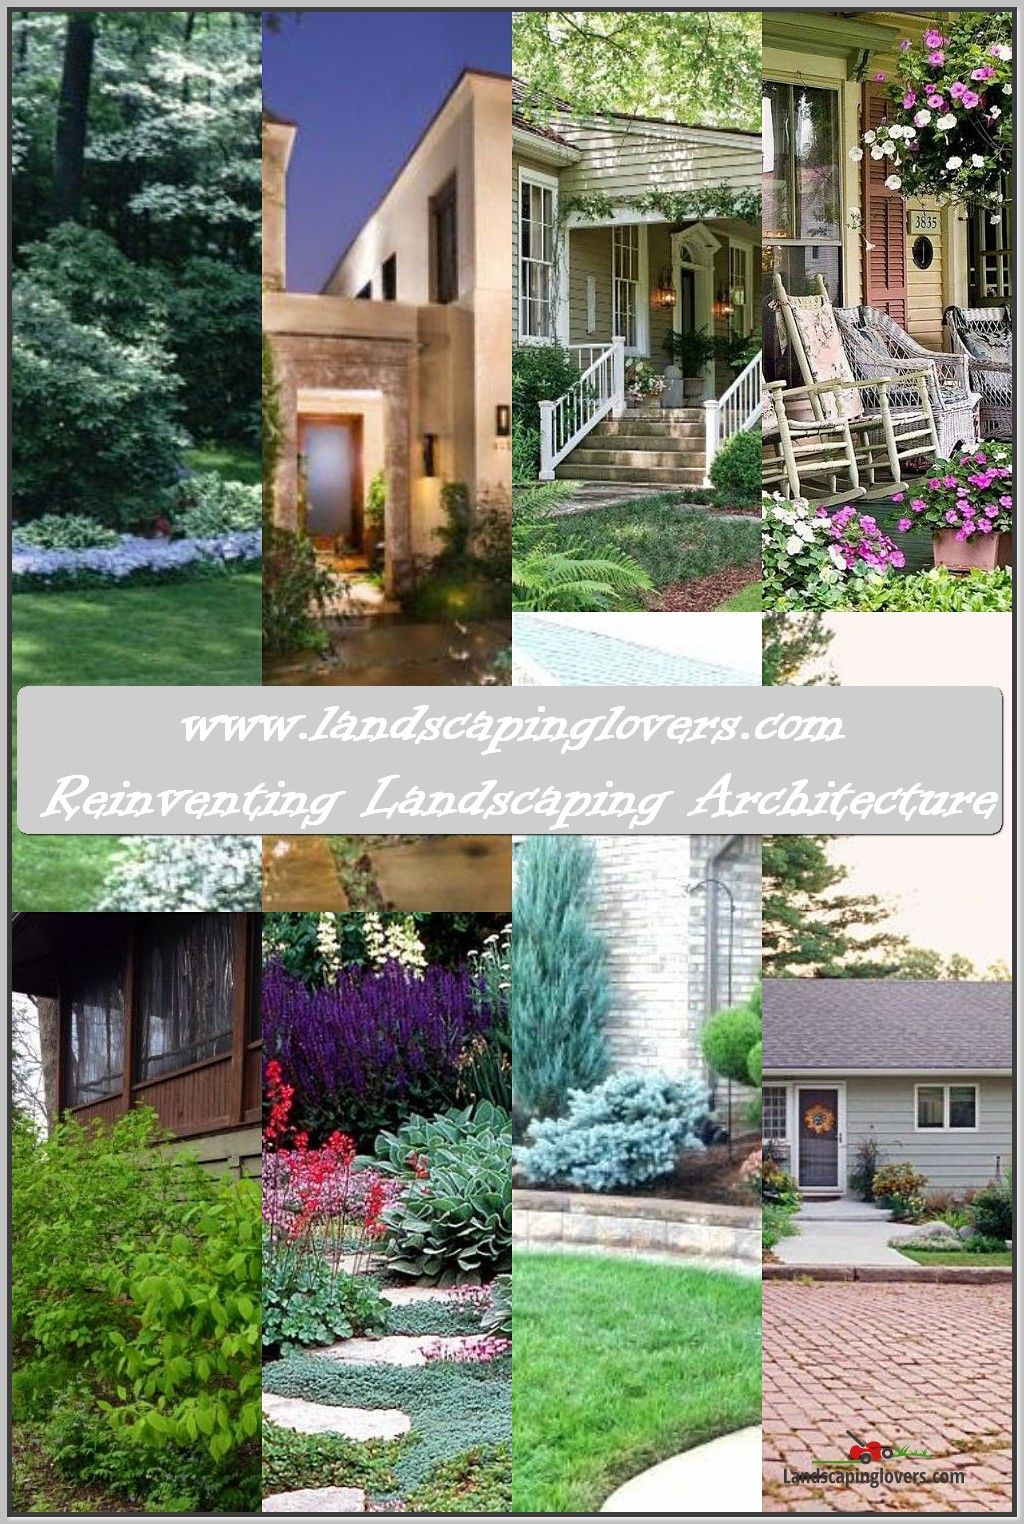 How To Hire The Right Landscaper For The Job For More Information Visit Image Link In 2020 Artificial Grass Tropical Landscaping Landscape